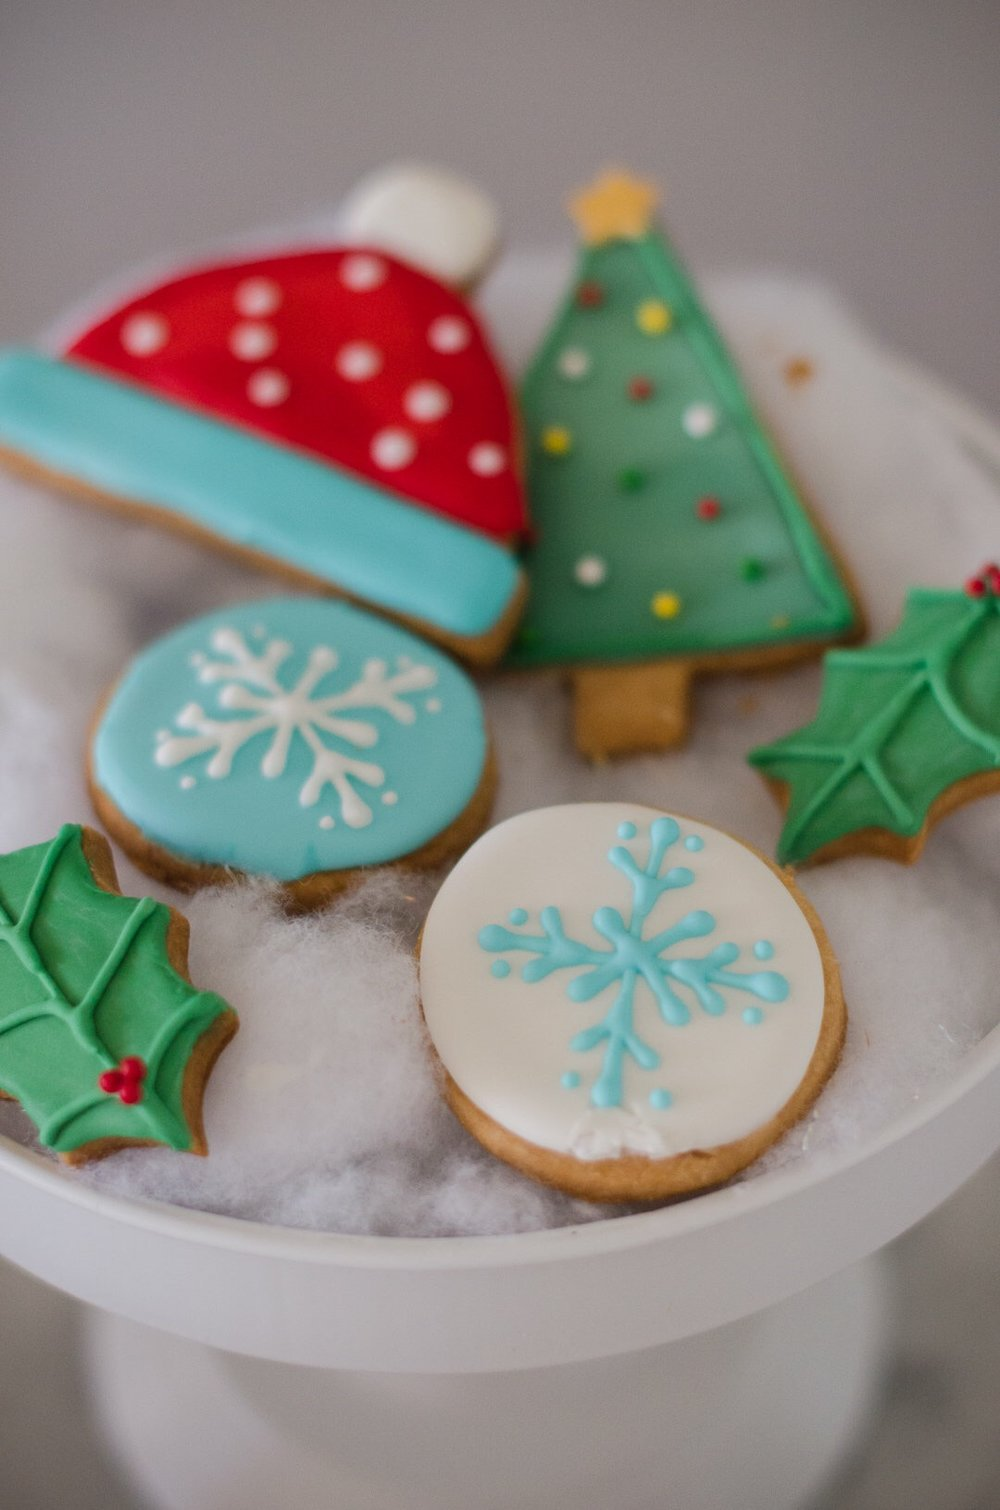 Holiday decorated Christmas cookies. See more holiday party inspiration from Austin based party stylist Mint Event Design at www.minteventdesign.com #desserttable #christmascookies #christmasdesserts #holidayparty #holidays #partyideas #christmasparty #holidaypartyideas